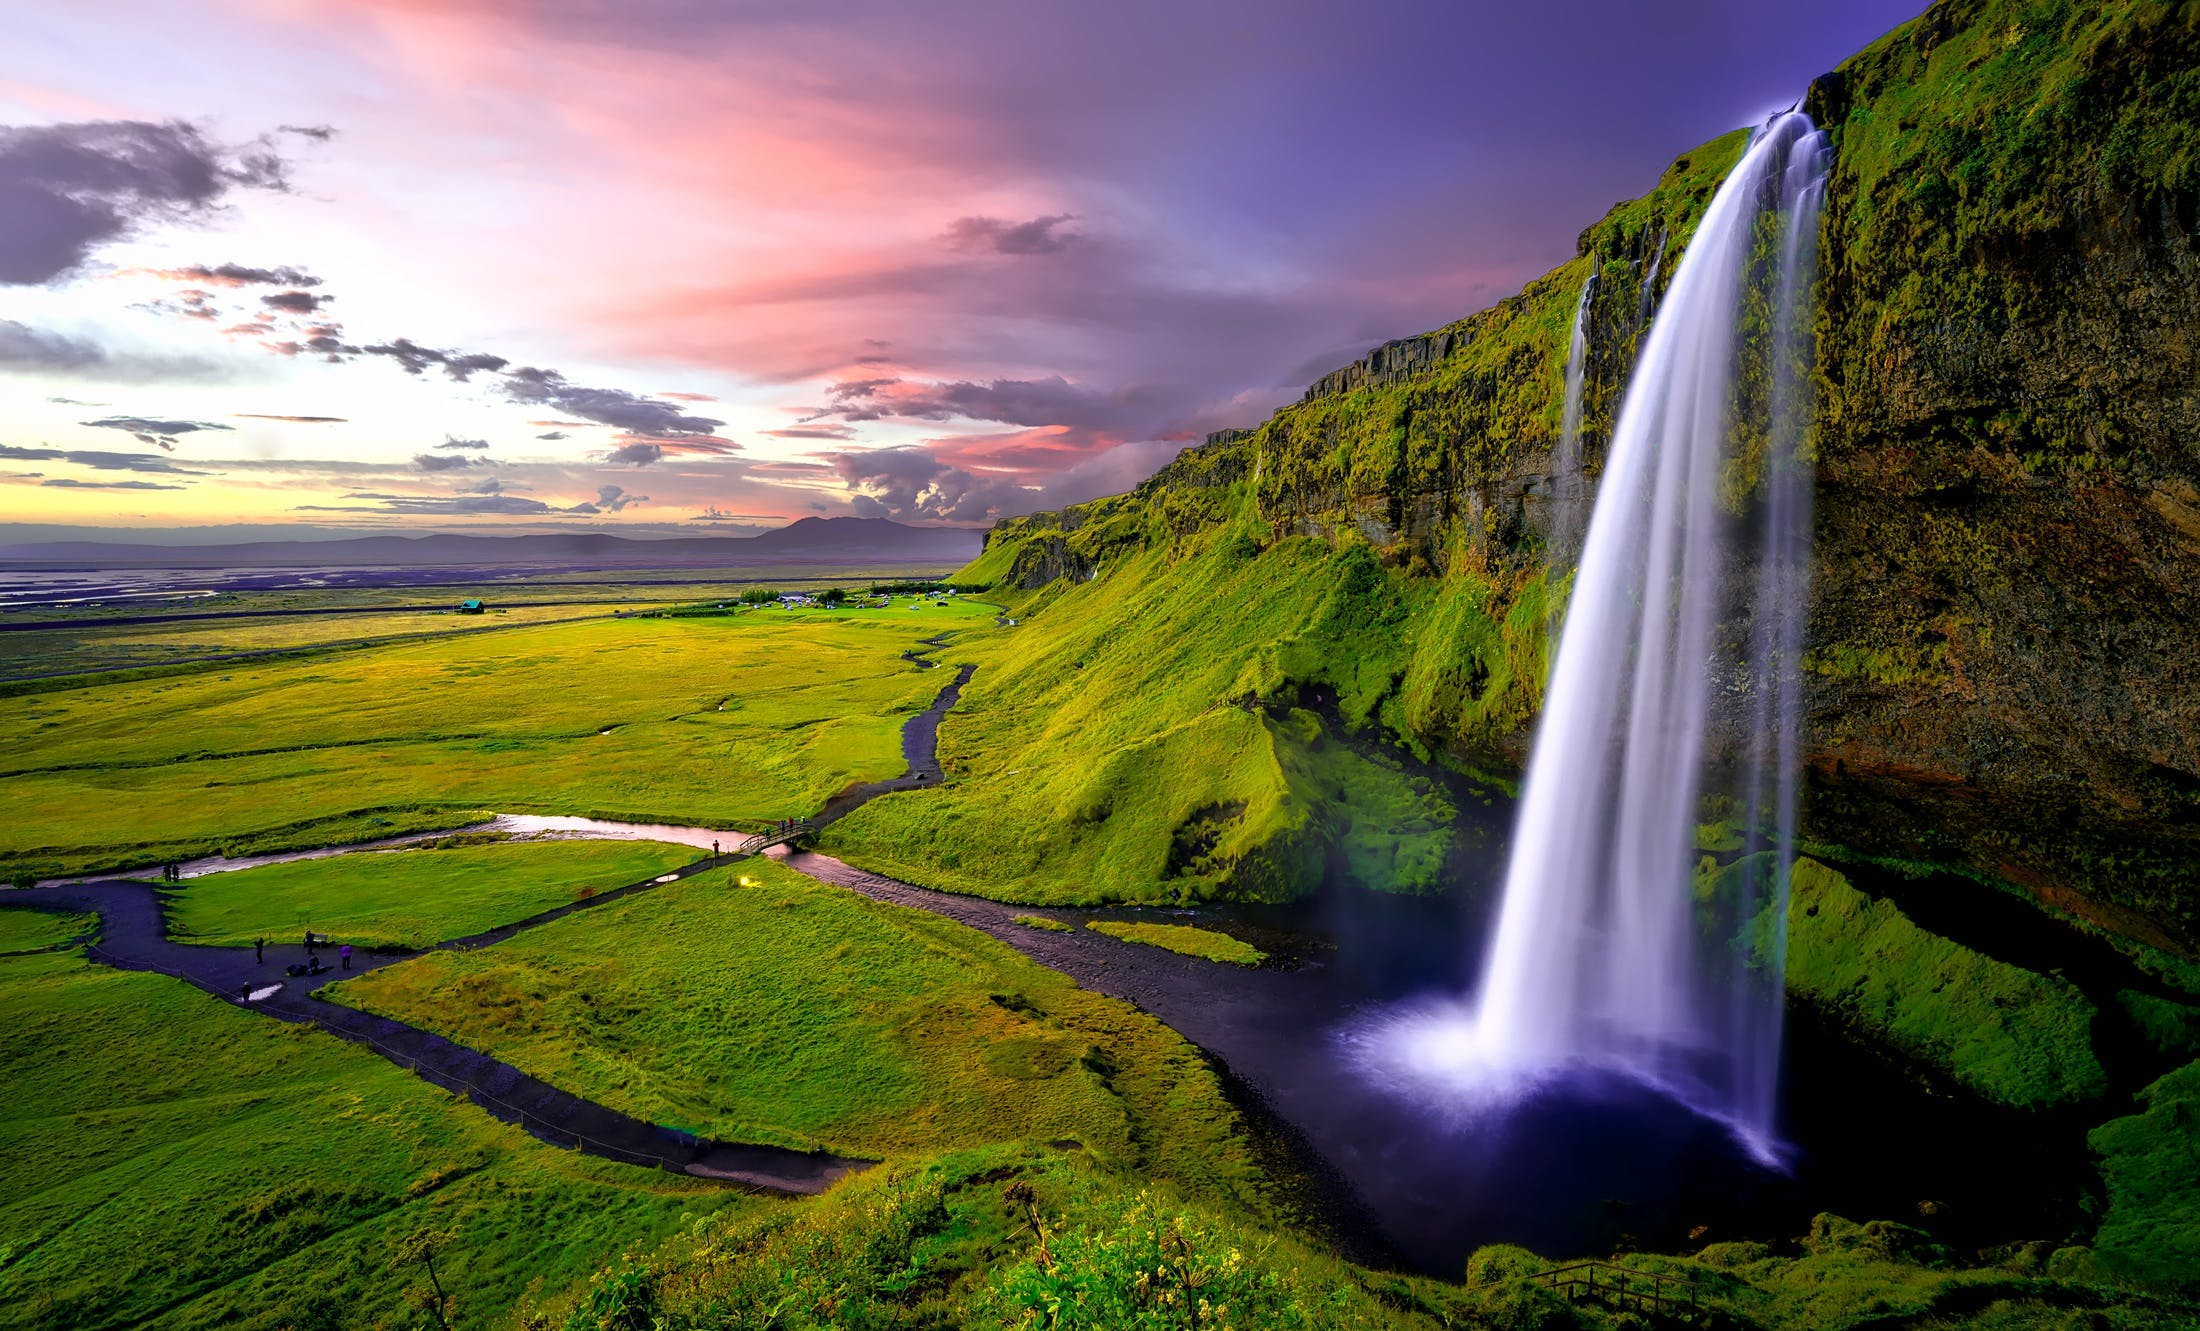 Time Lapse Photography of Waterfalls during Sunset